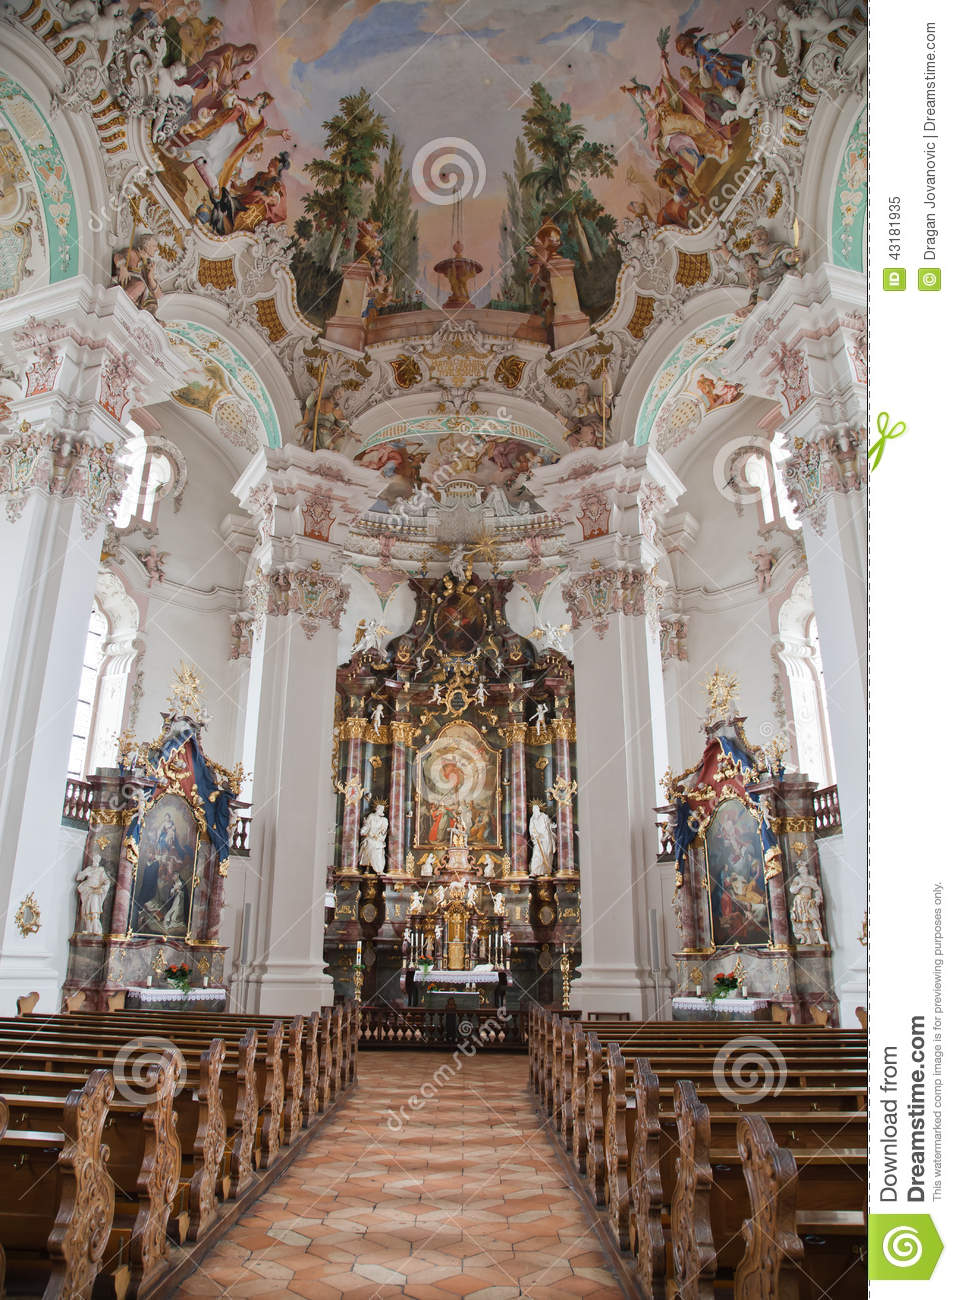 Decoration Facade Interior Baroque Church Stock Image. Image Of Watch